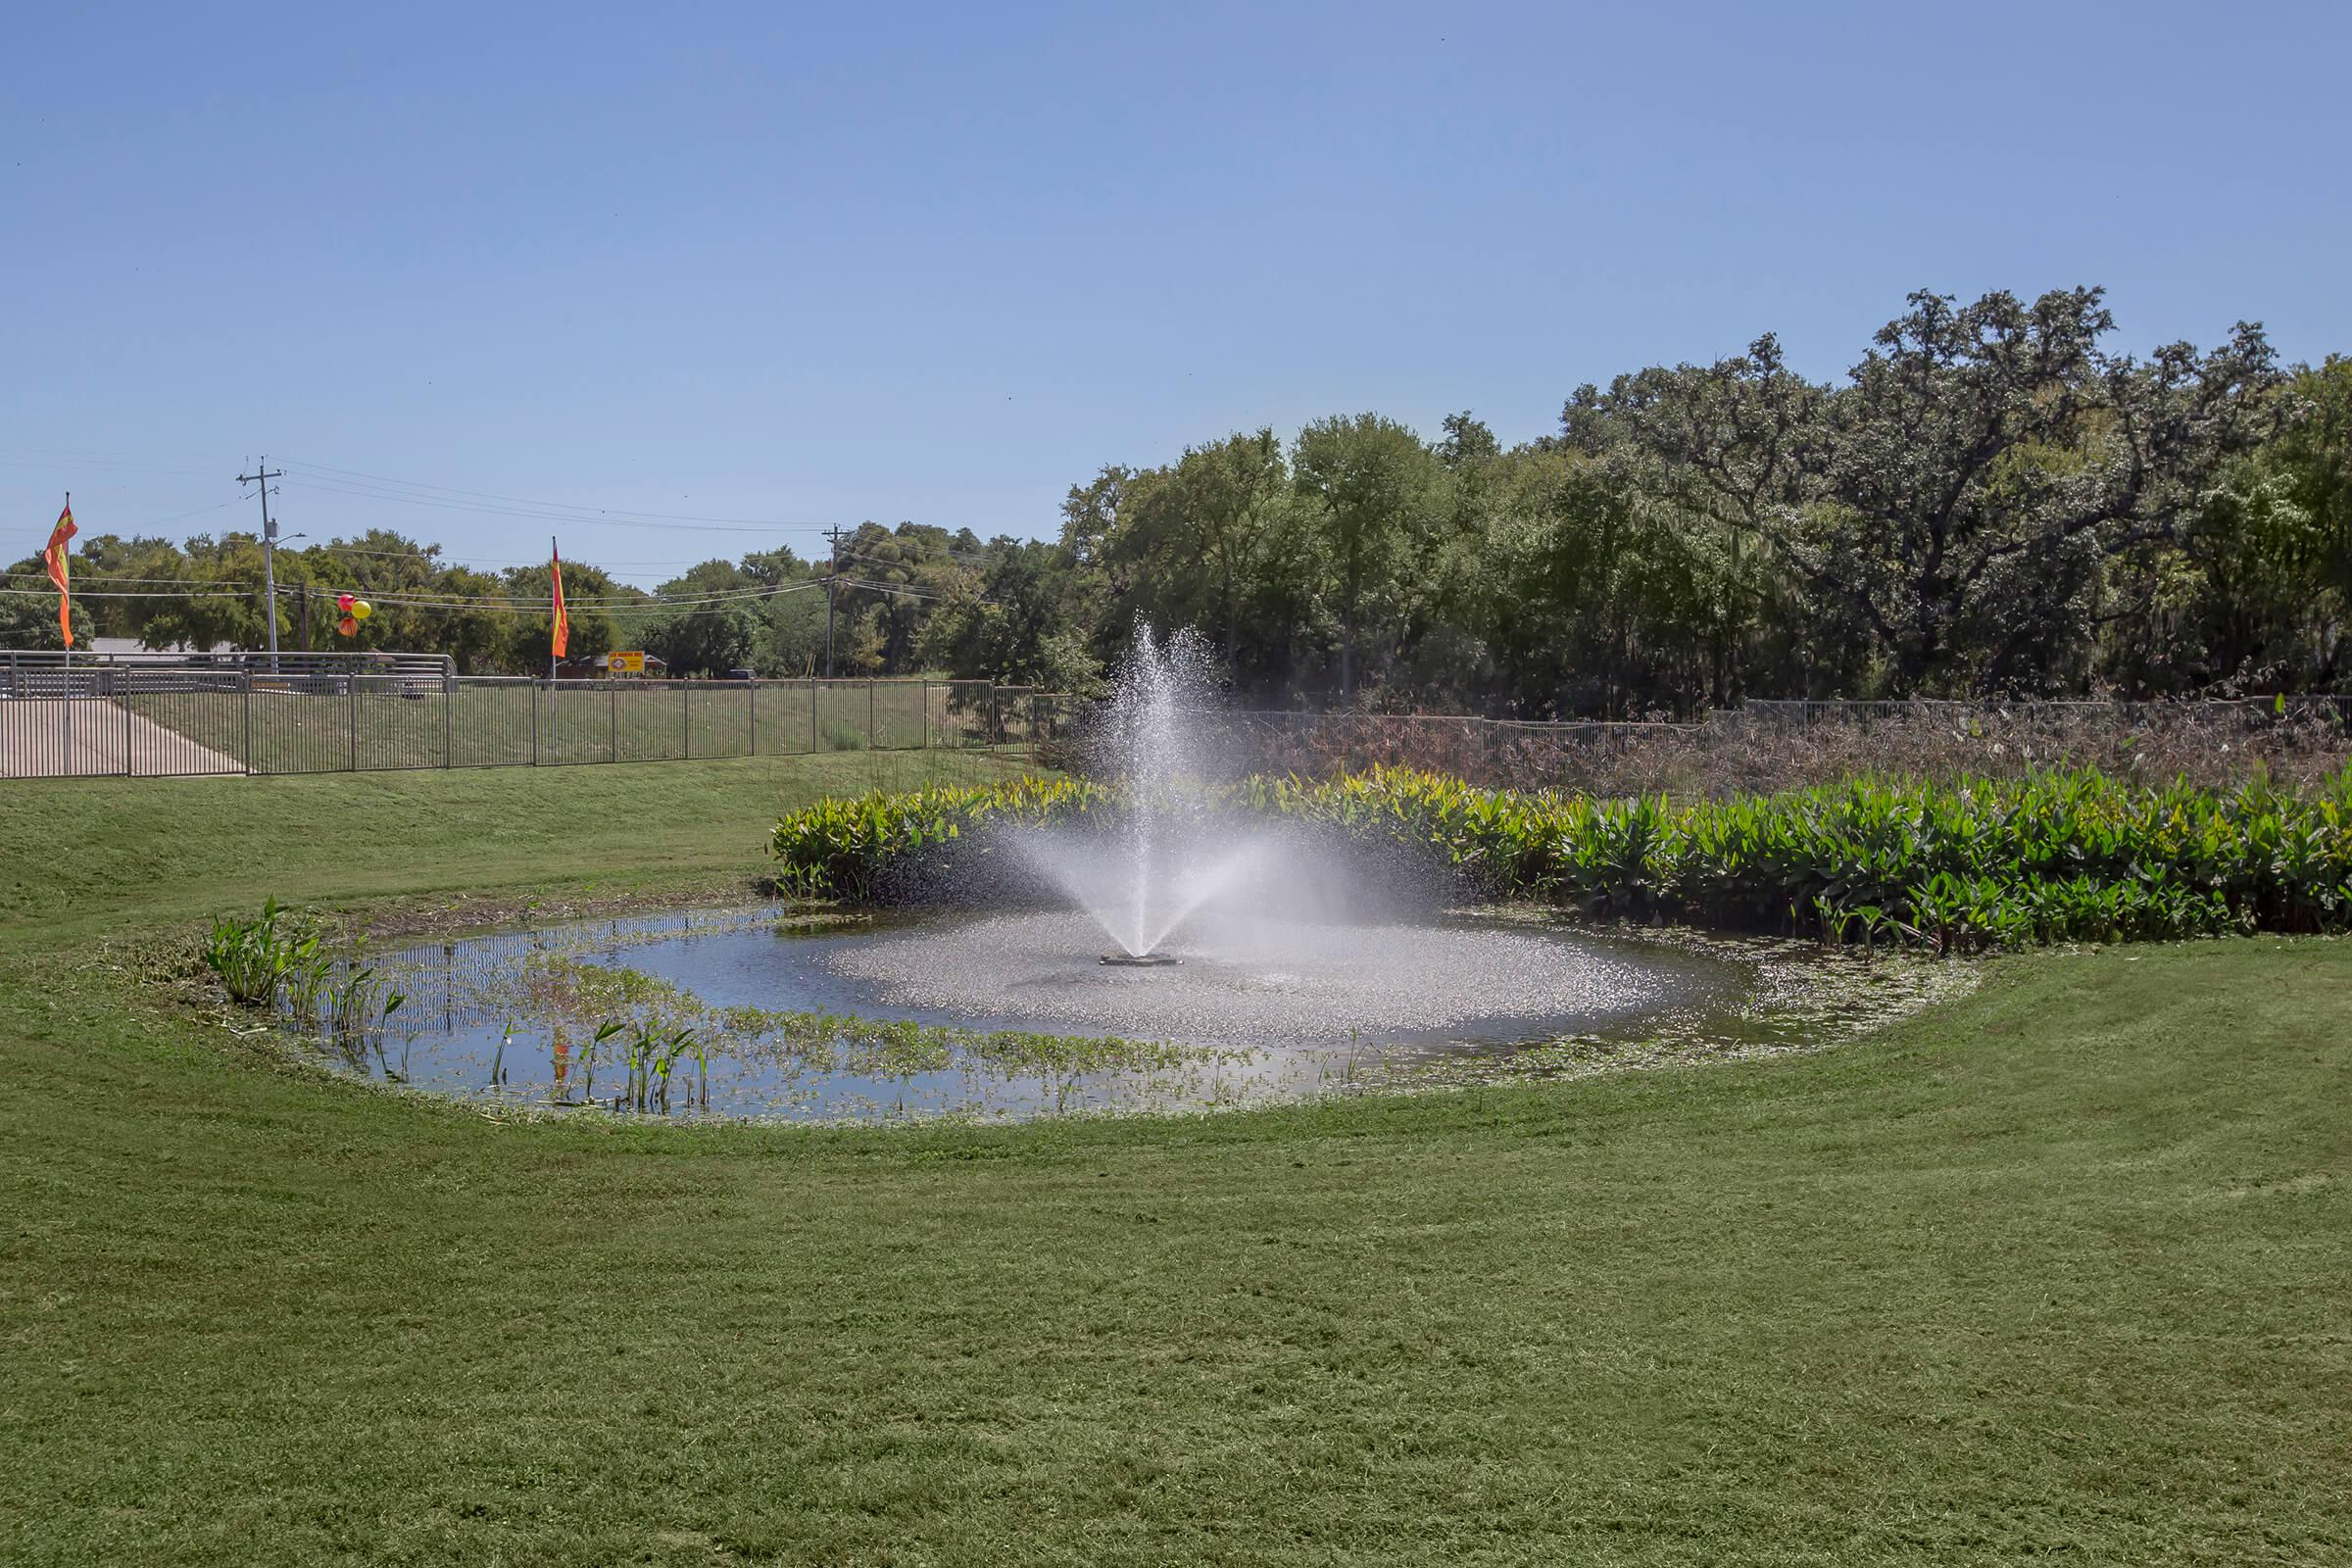 a close up of a water fountain in the middle of a field